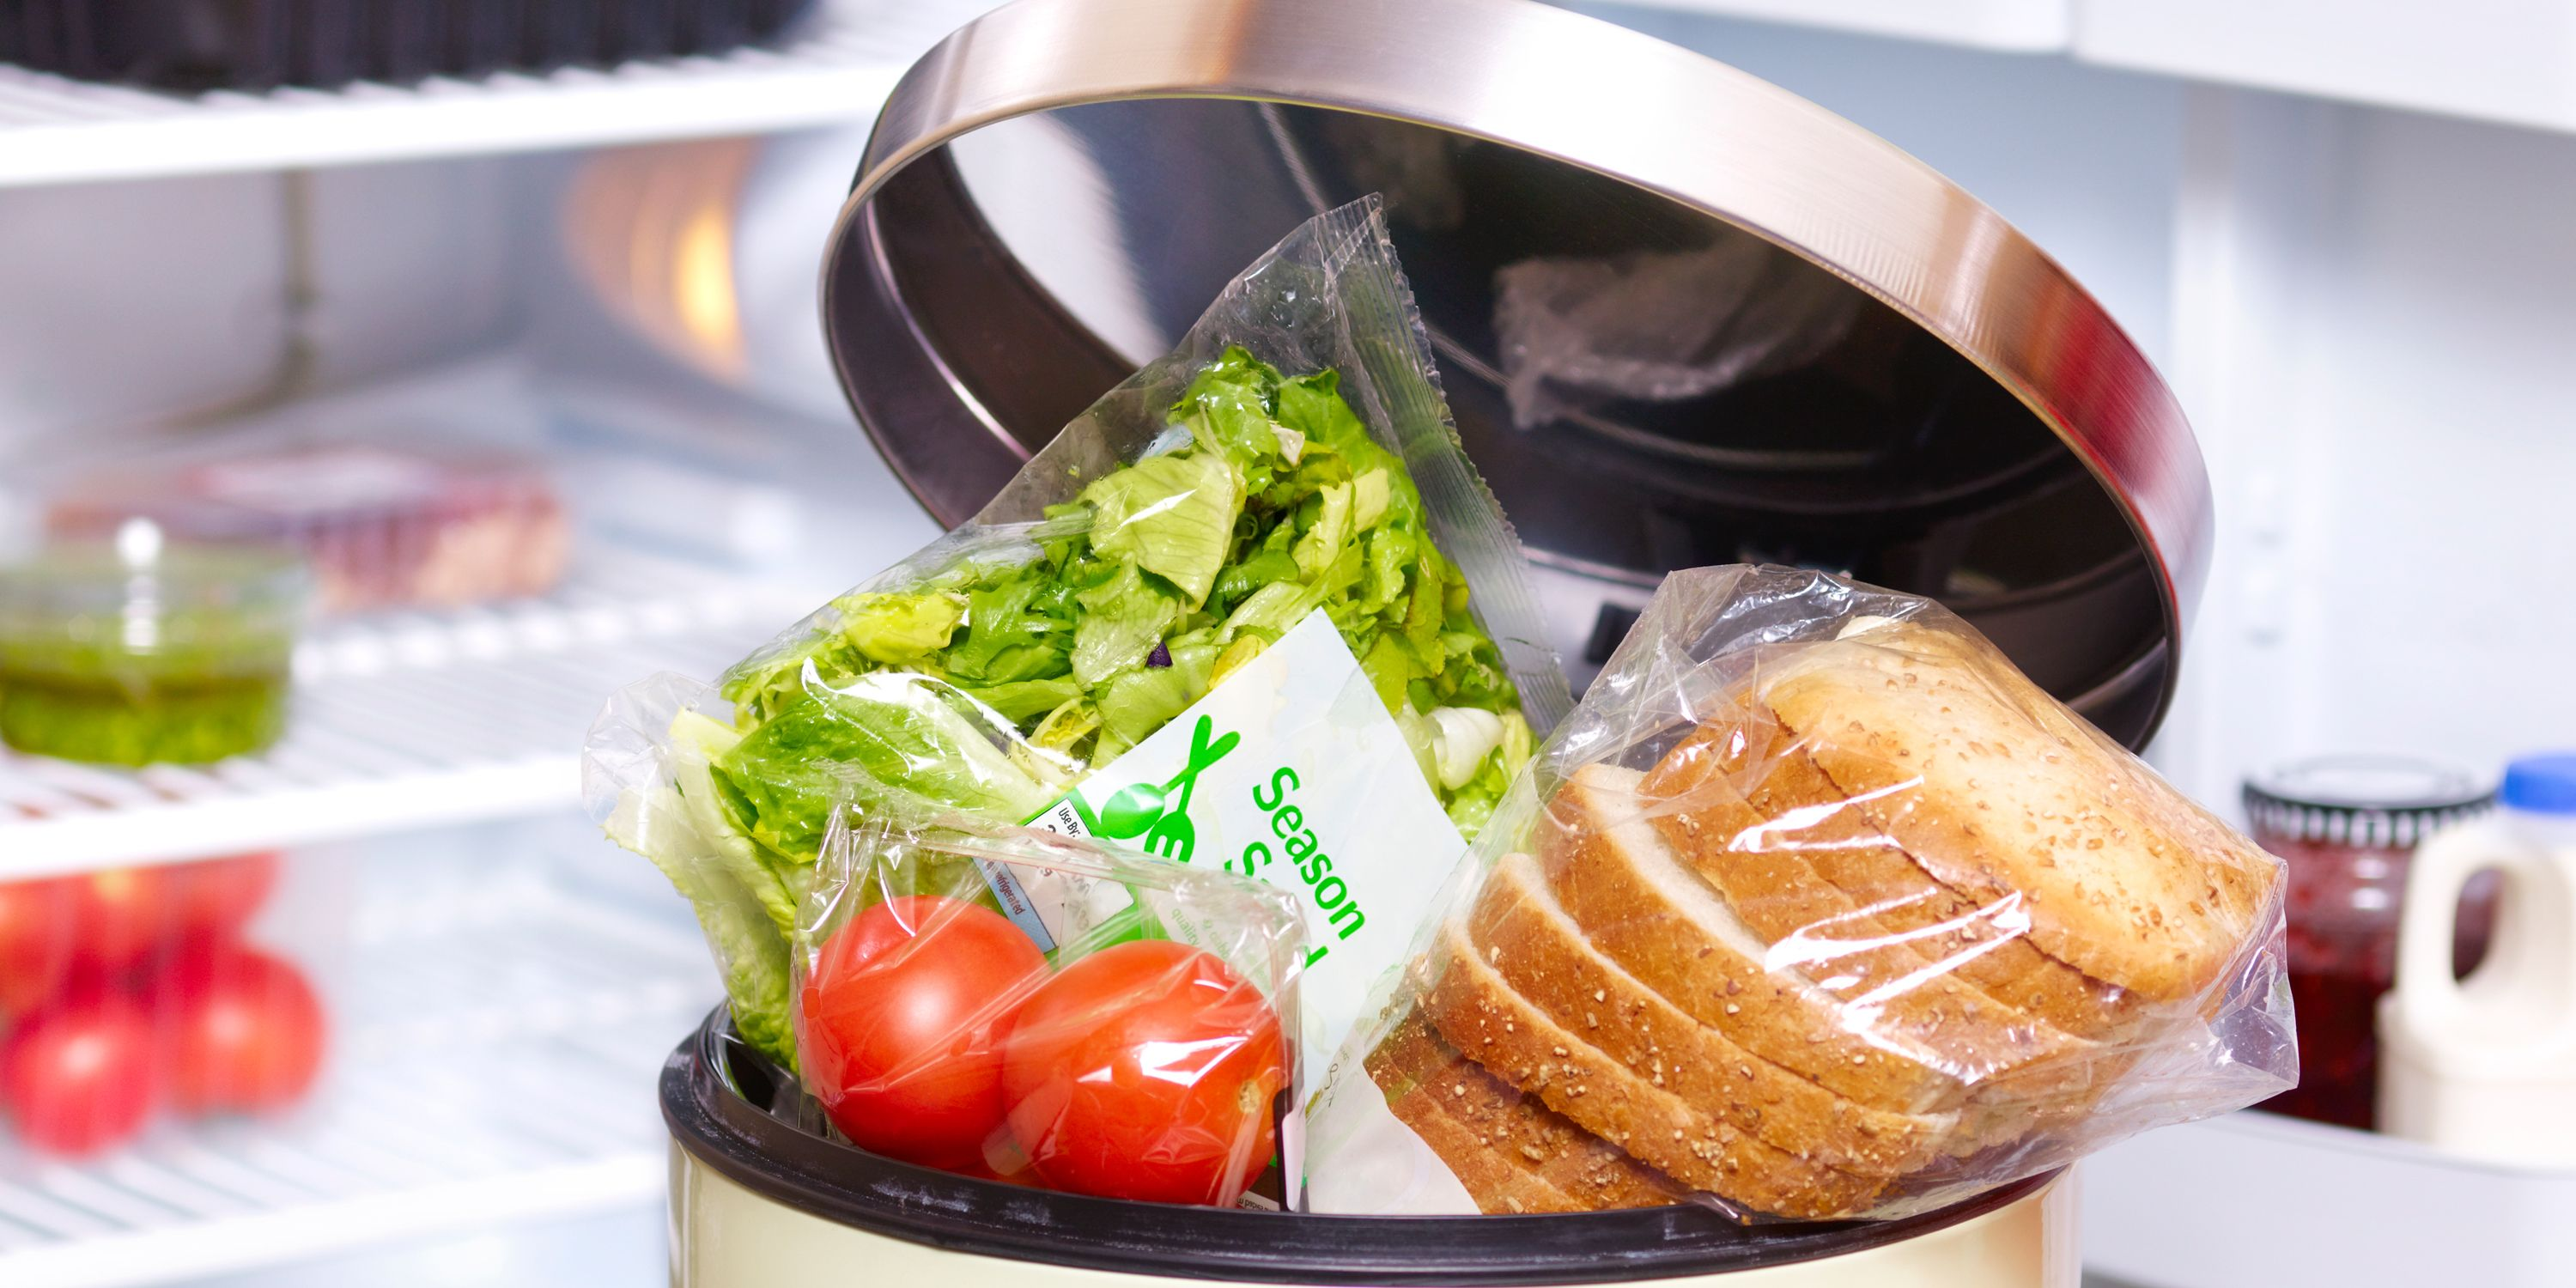 Food Expiration Dates - How Long Does Food Last in the